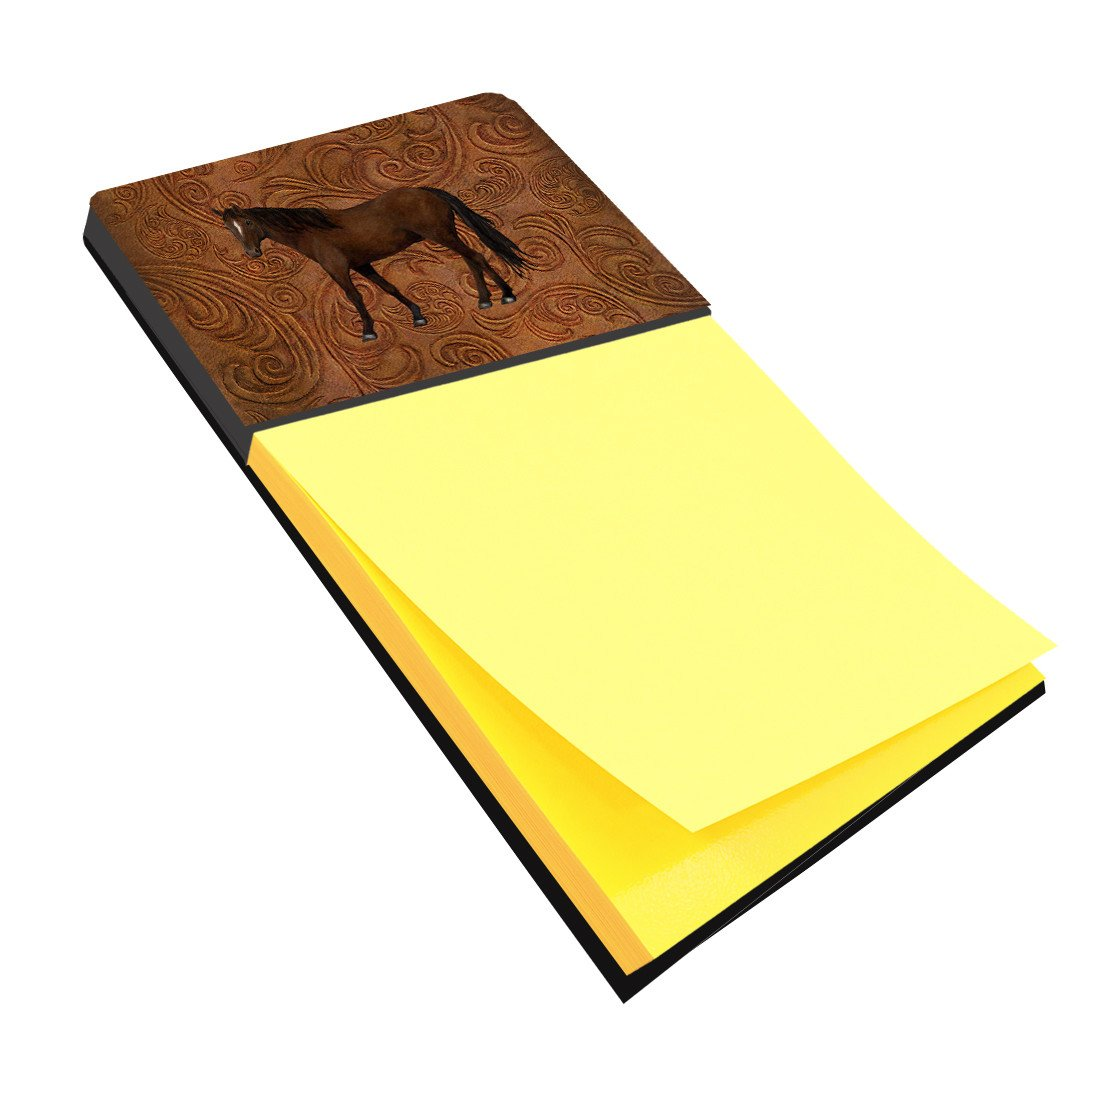 Horse Refiillable Sticky Note Holder or Postit Note Dispenser SB3066SN by Caroline's Treasures